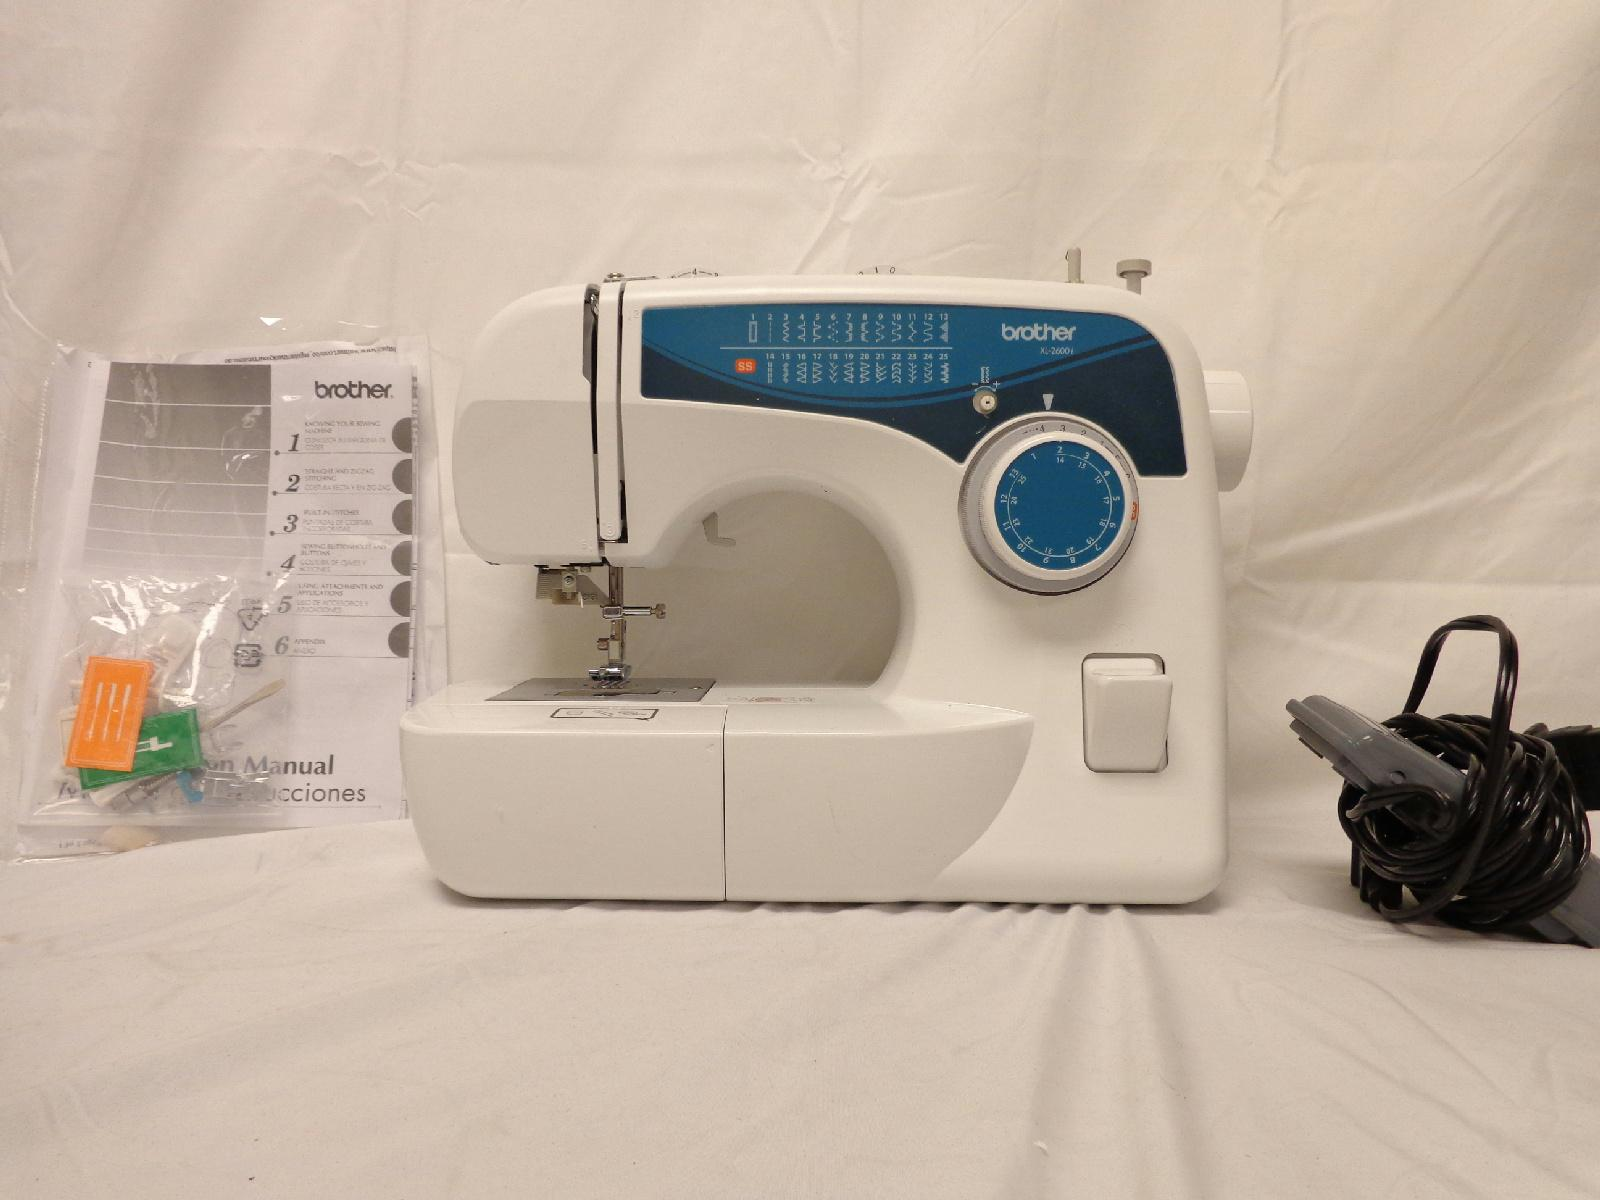 Brother xl2600i 25 stitch free arm sewing machine white blue for Machine a coudre xl 2600 brother